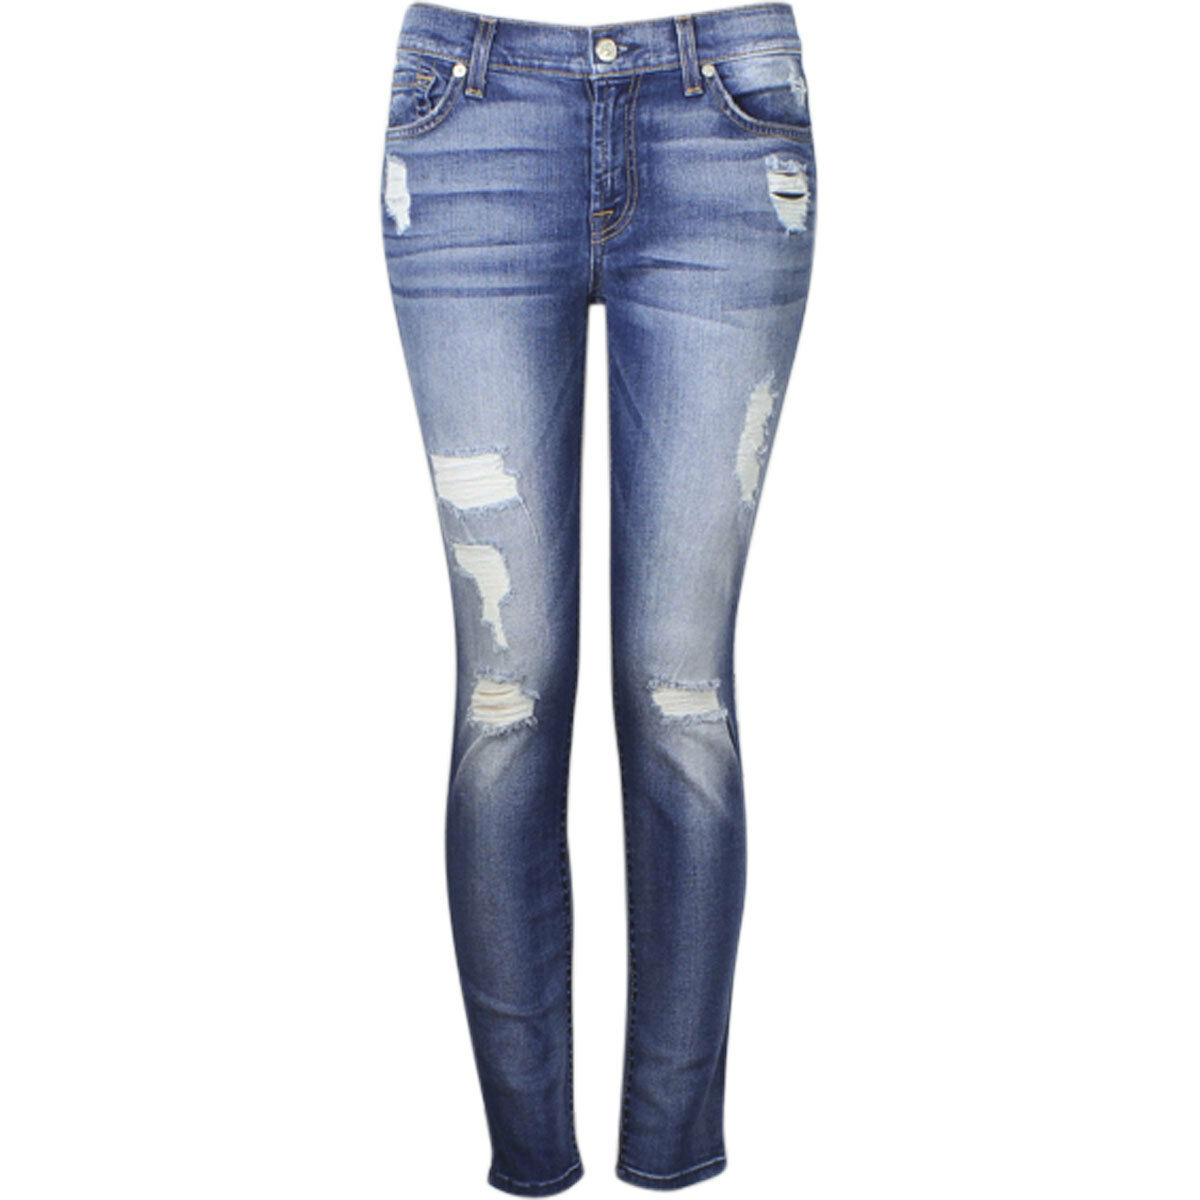 7 For All Mankind The Ankle Skinny With Destroy Distressed Light Jeans